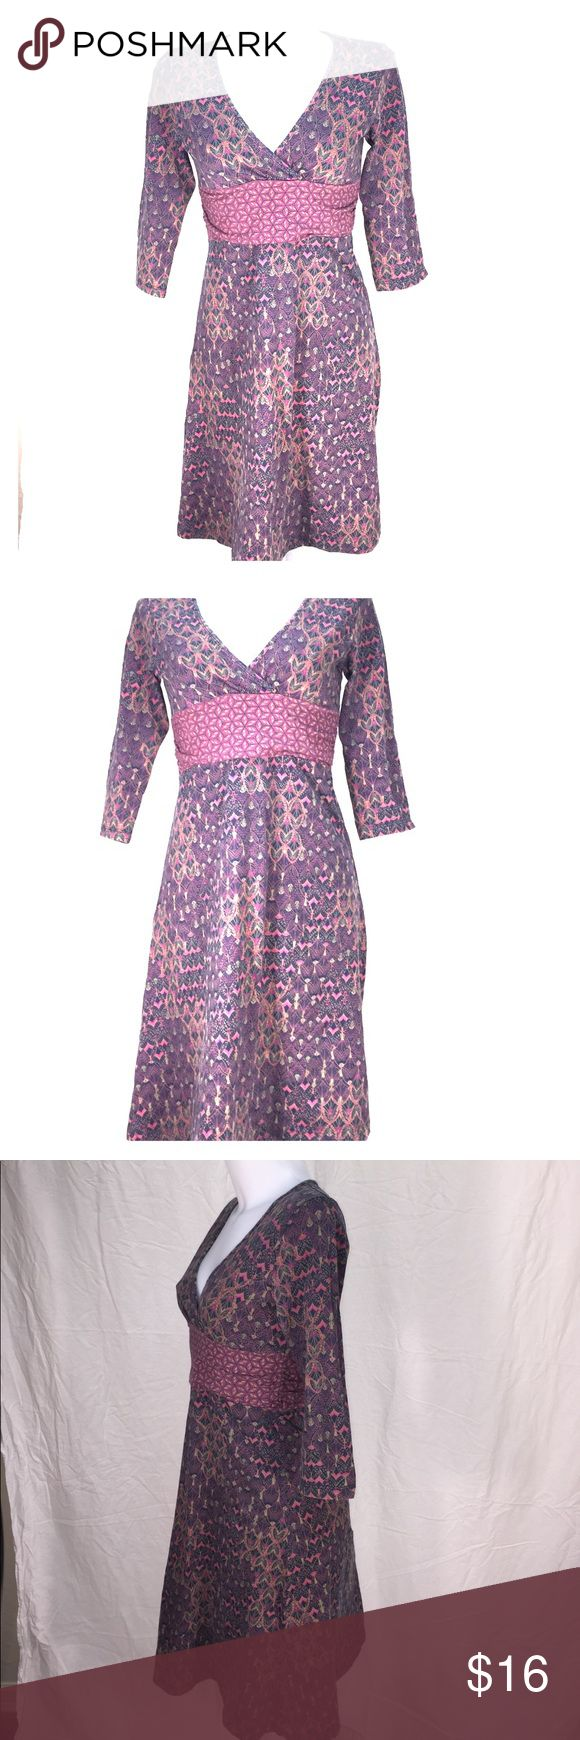 Purple and Pink Pattered Patagonia Dress Medium This pullover Stretch Patagonia dress is so comfortable. Size medium and gently used. Patagonia Dresses Midi